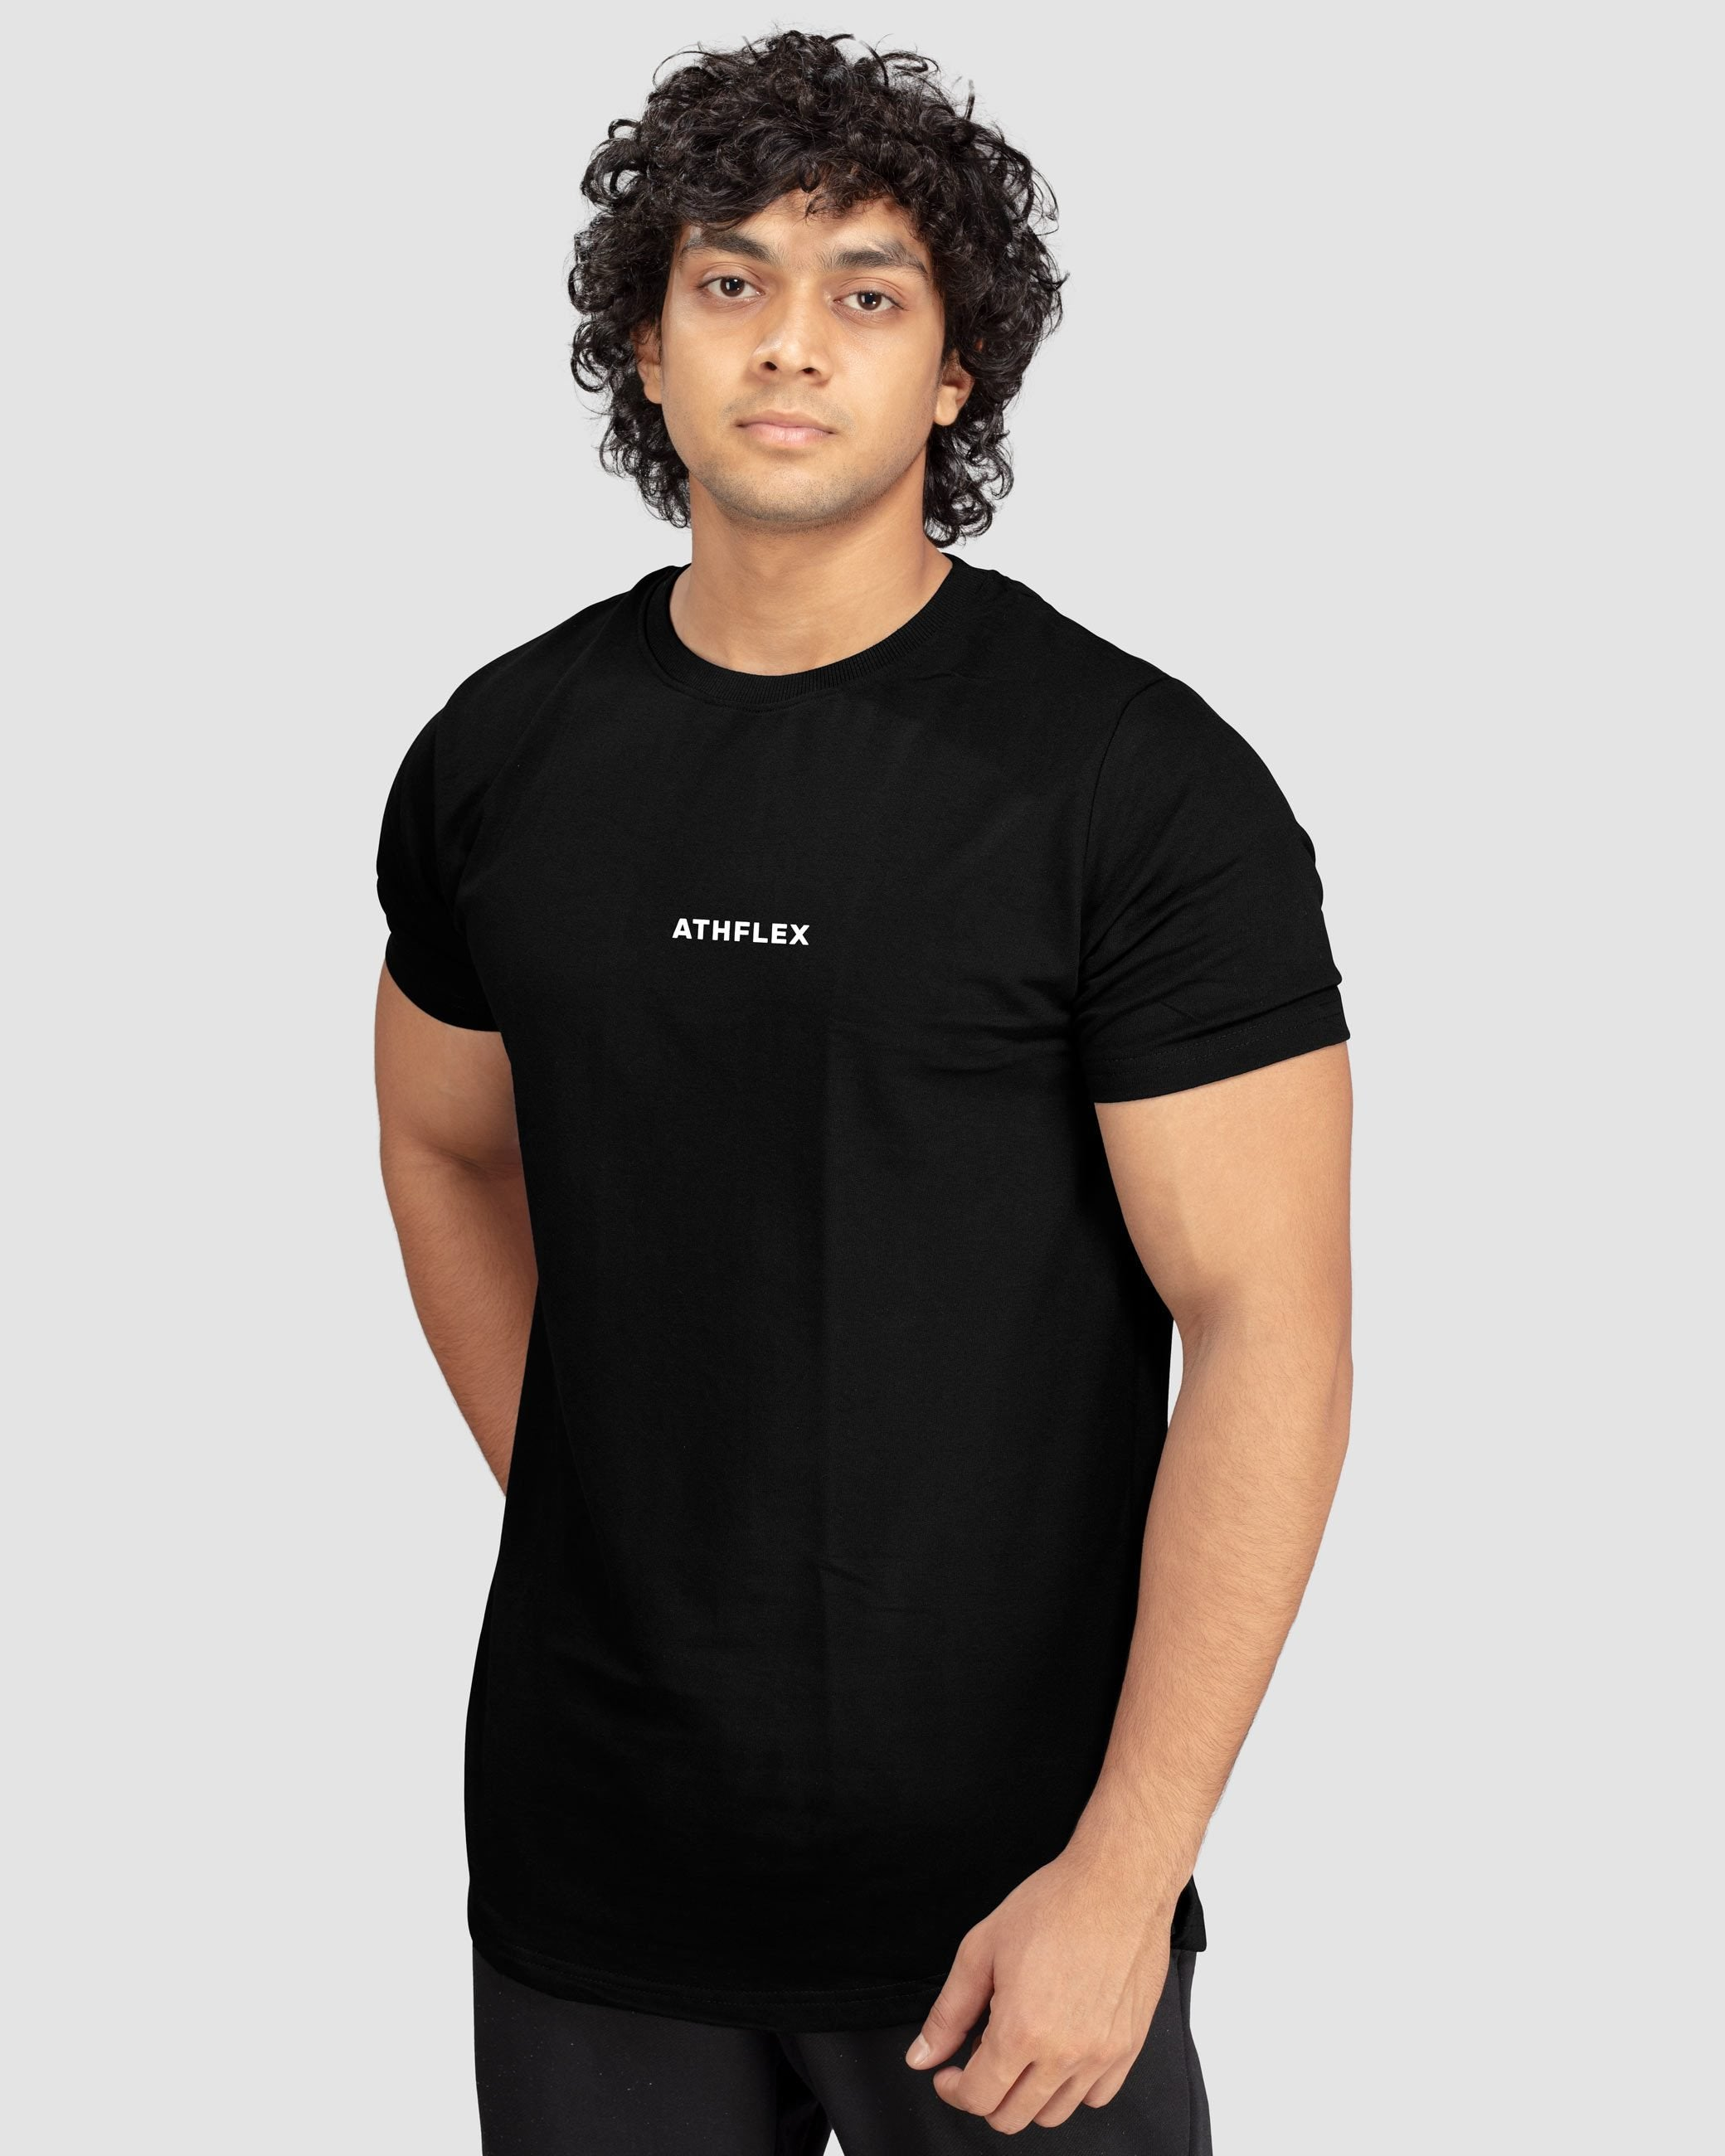 Flex Leisure Longline t-shirt(Black) Athflex